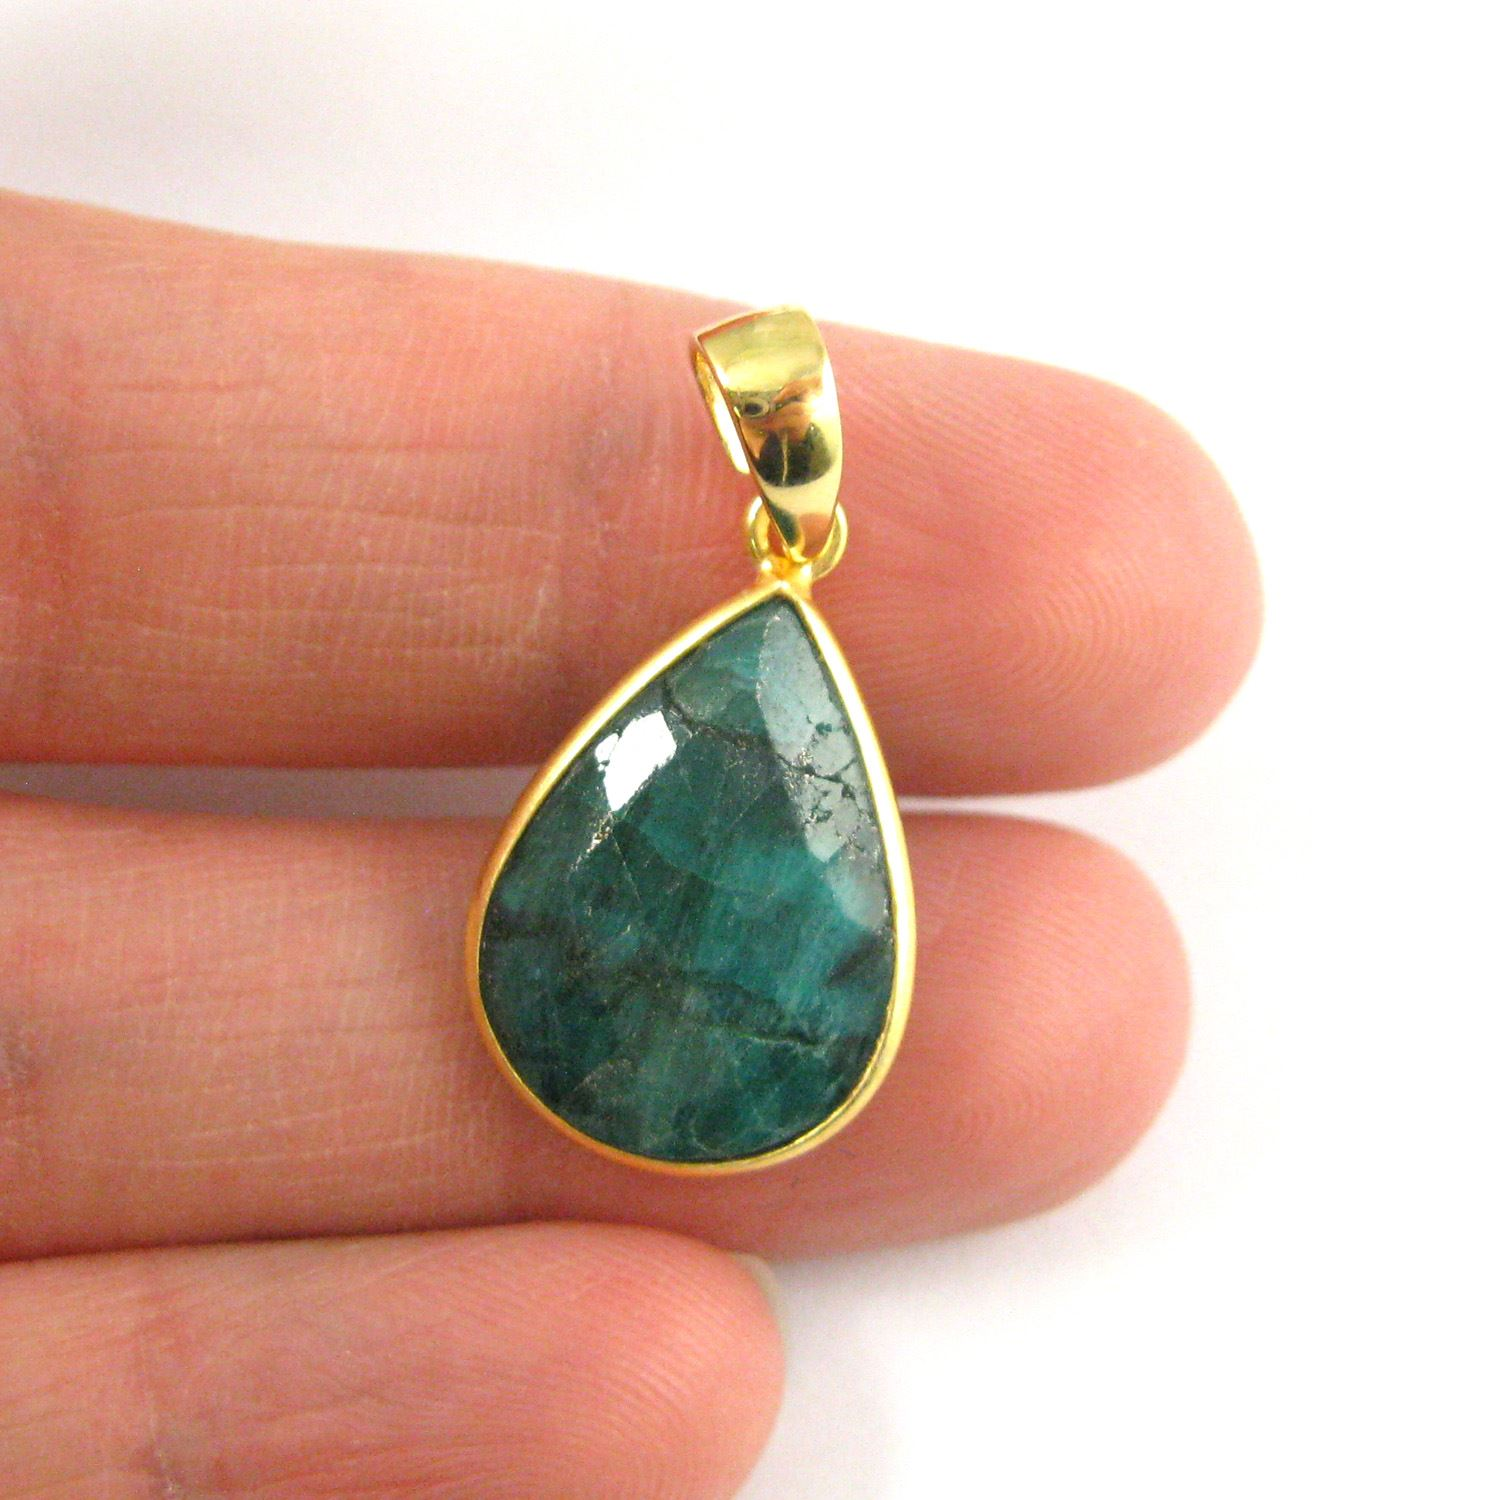 Bezel Gemstone Pendant with Bail -Gold plated Sterling Silver Teardrop Gem Pendant - Ready for Necklace - 29mm - Emerald Dyed